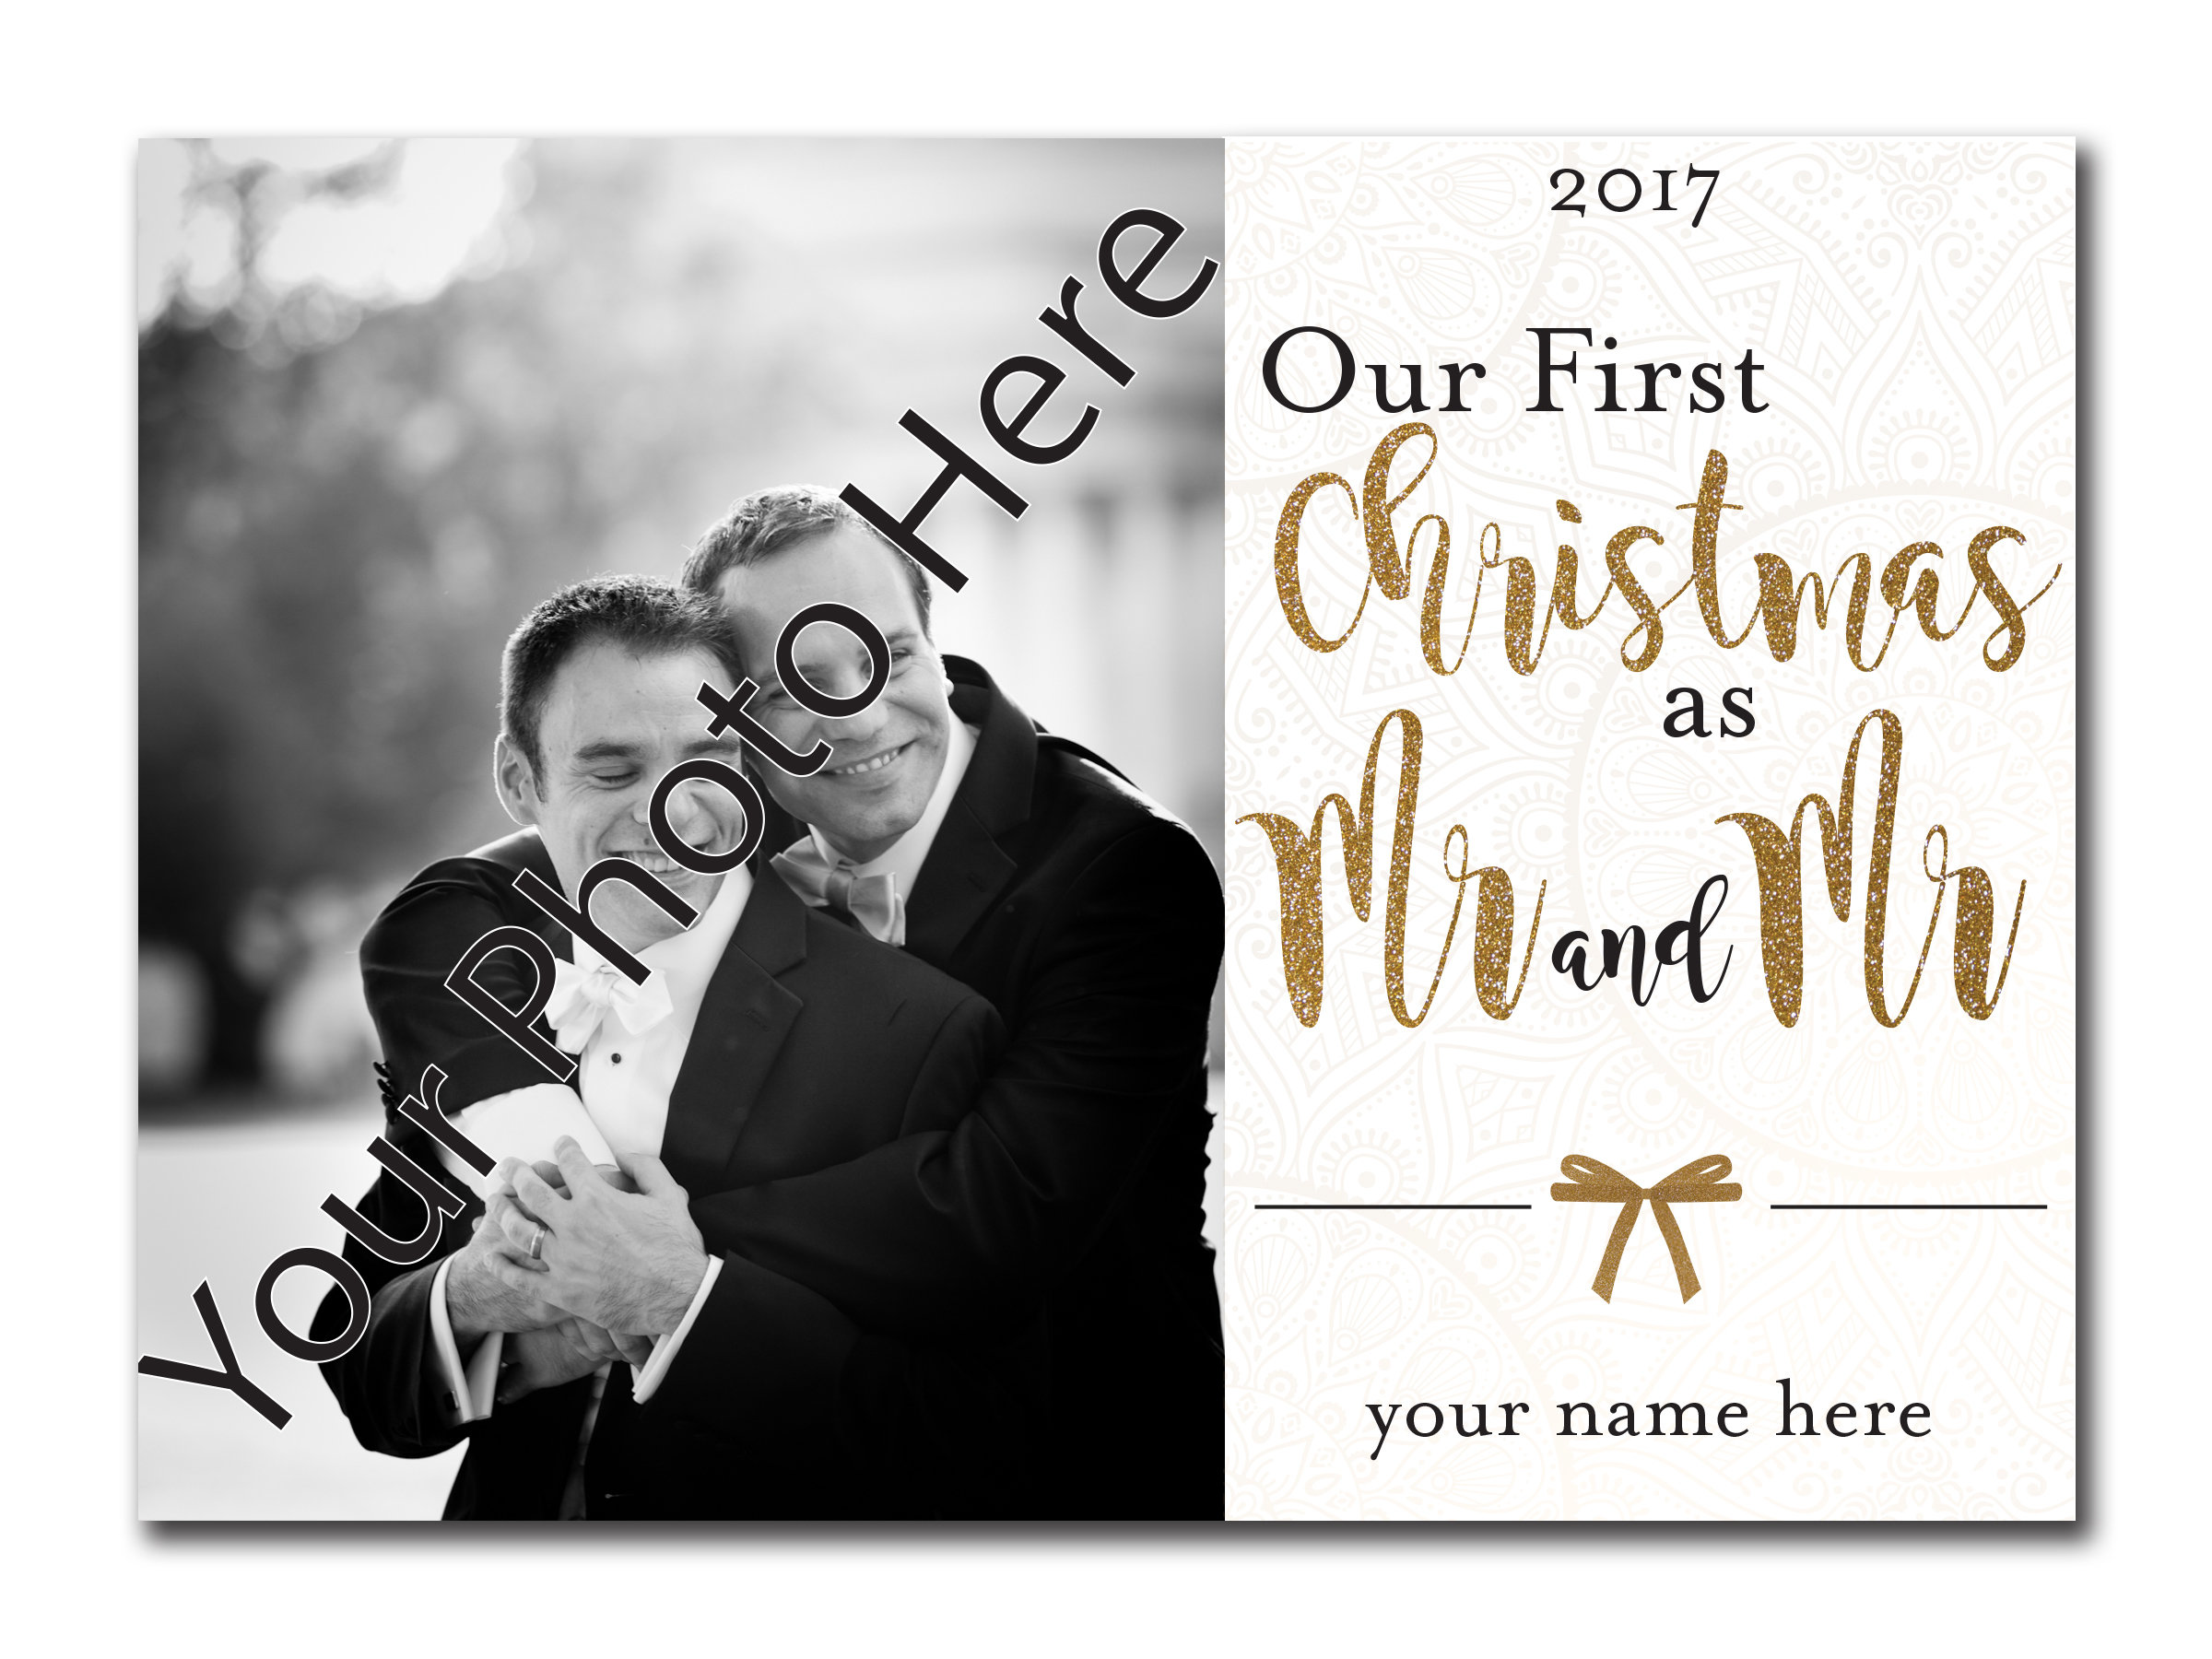 Our First Christmas as Mr. and Mr. 5x7 00034